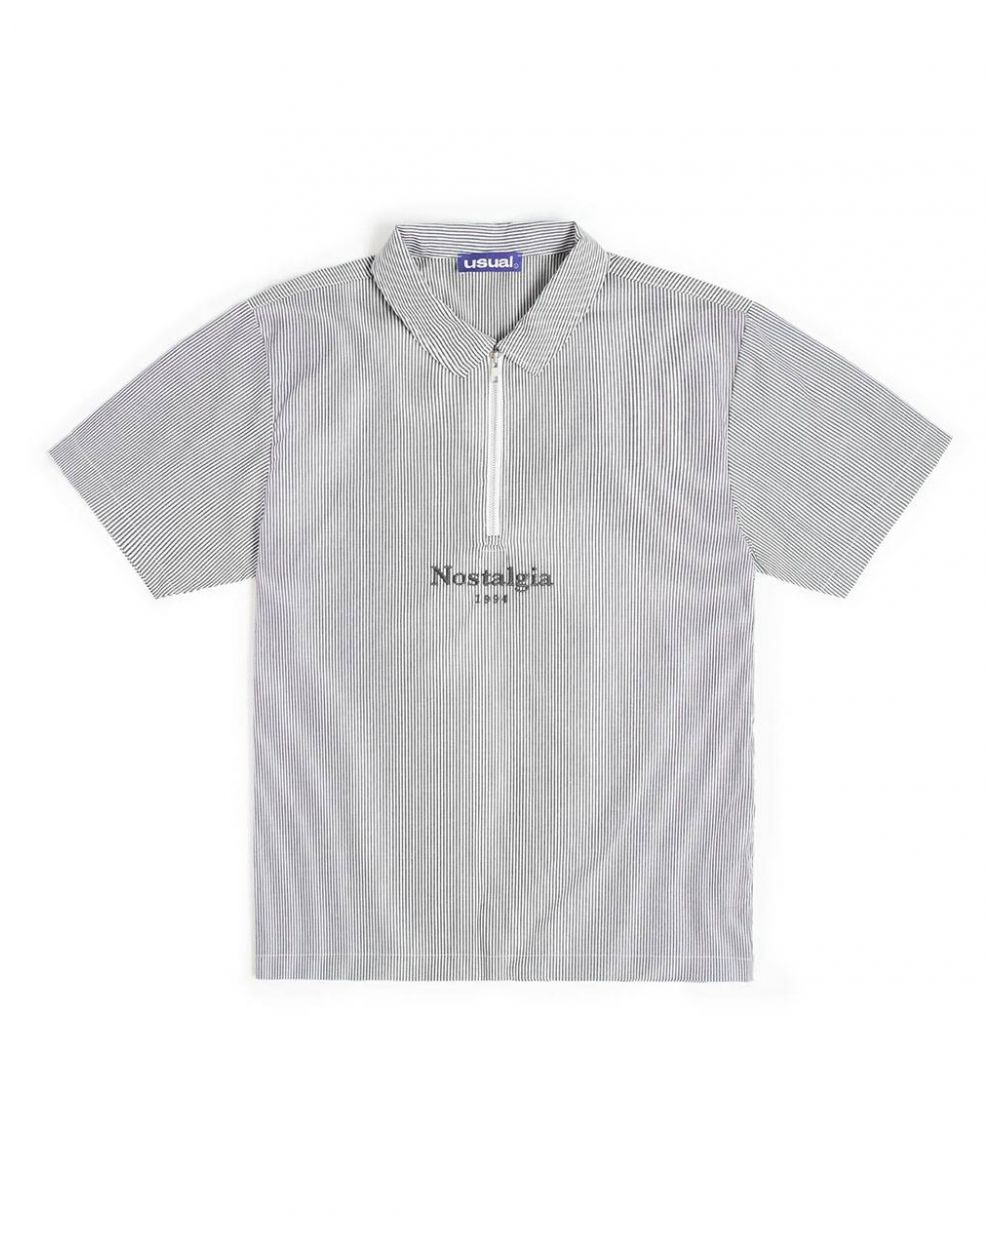 Nostalgia 1994 by Usual Striped shirt - black Usual Shirt 81,15€